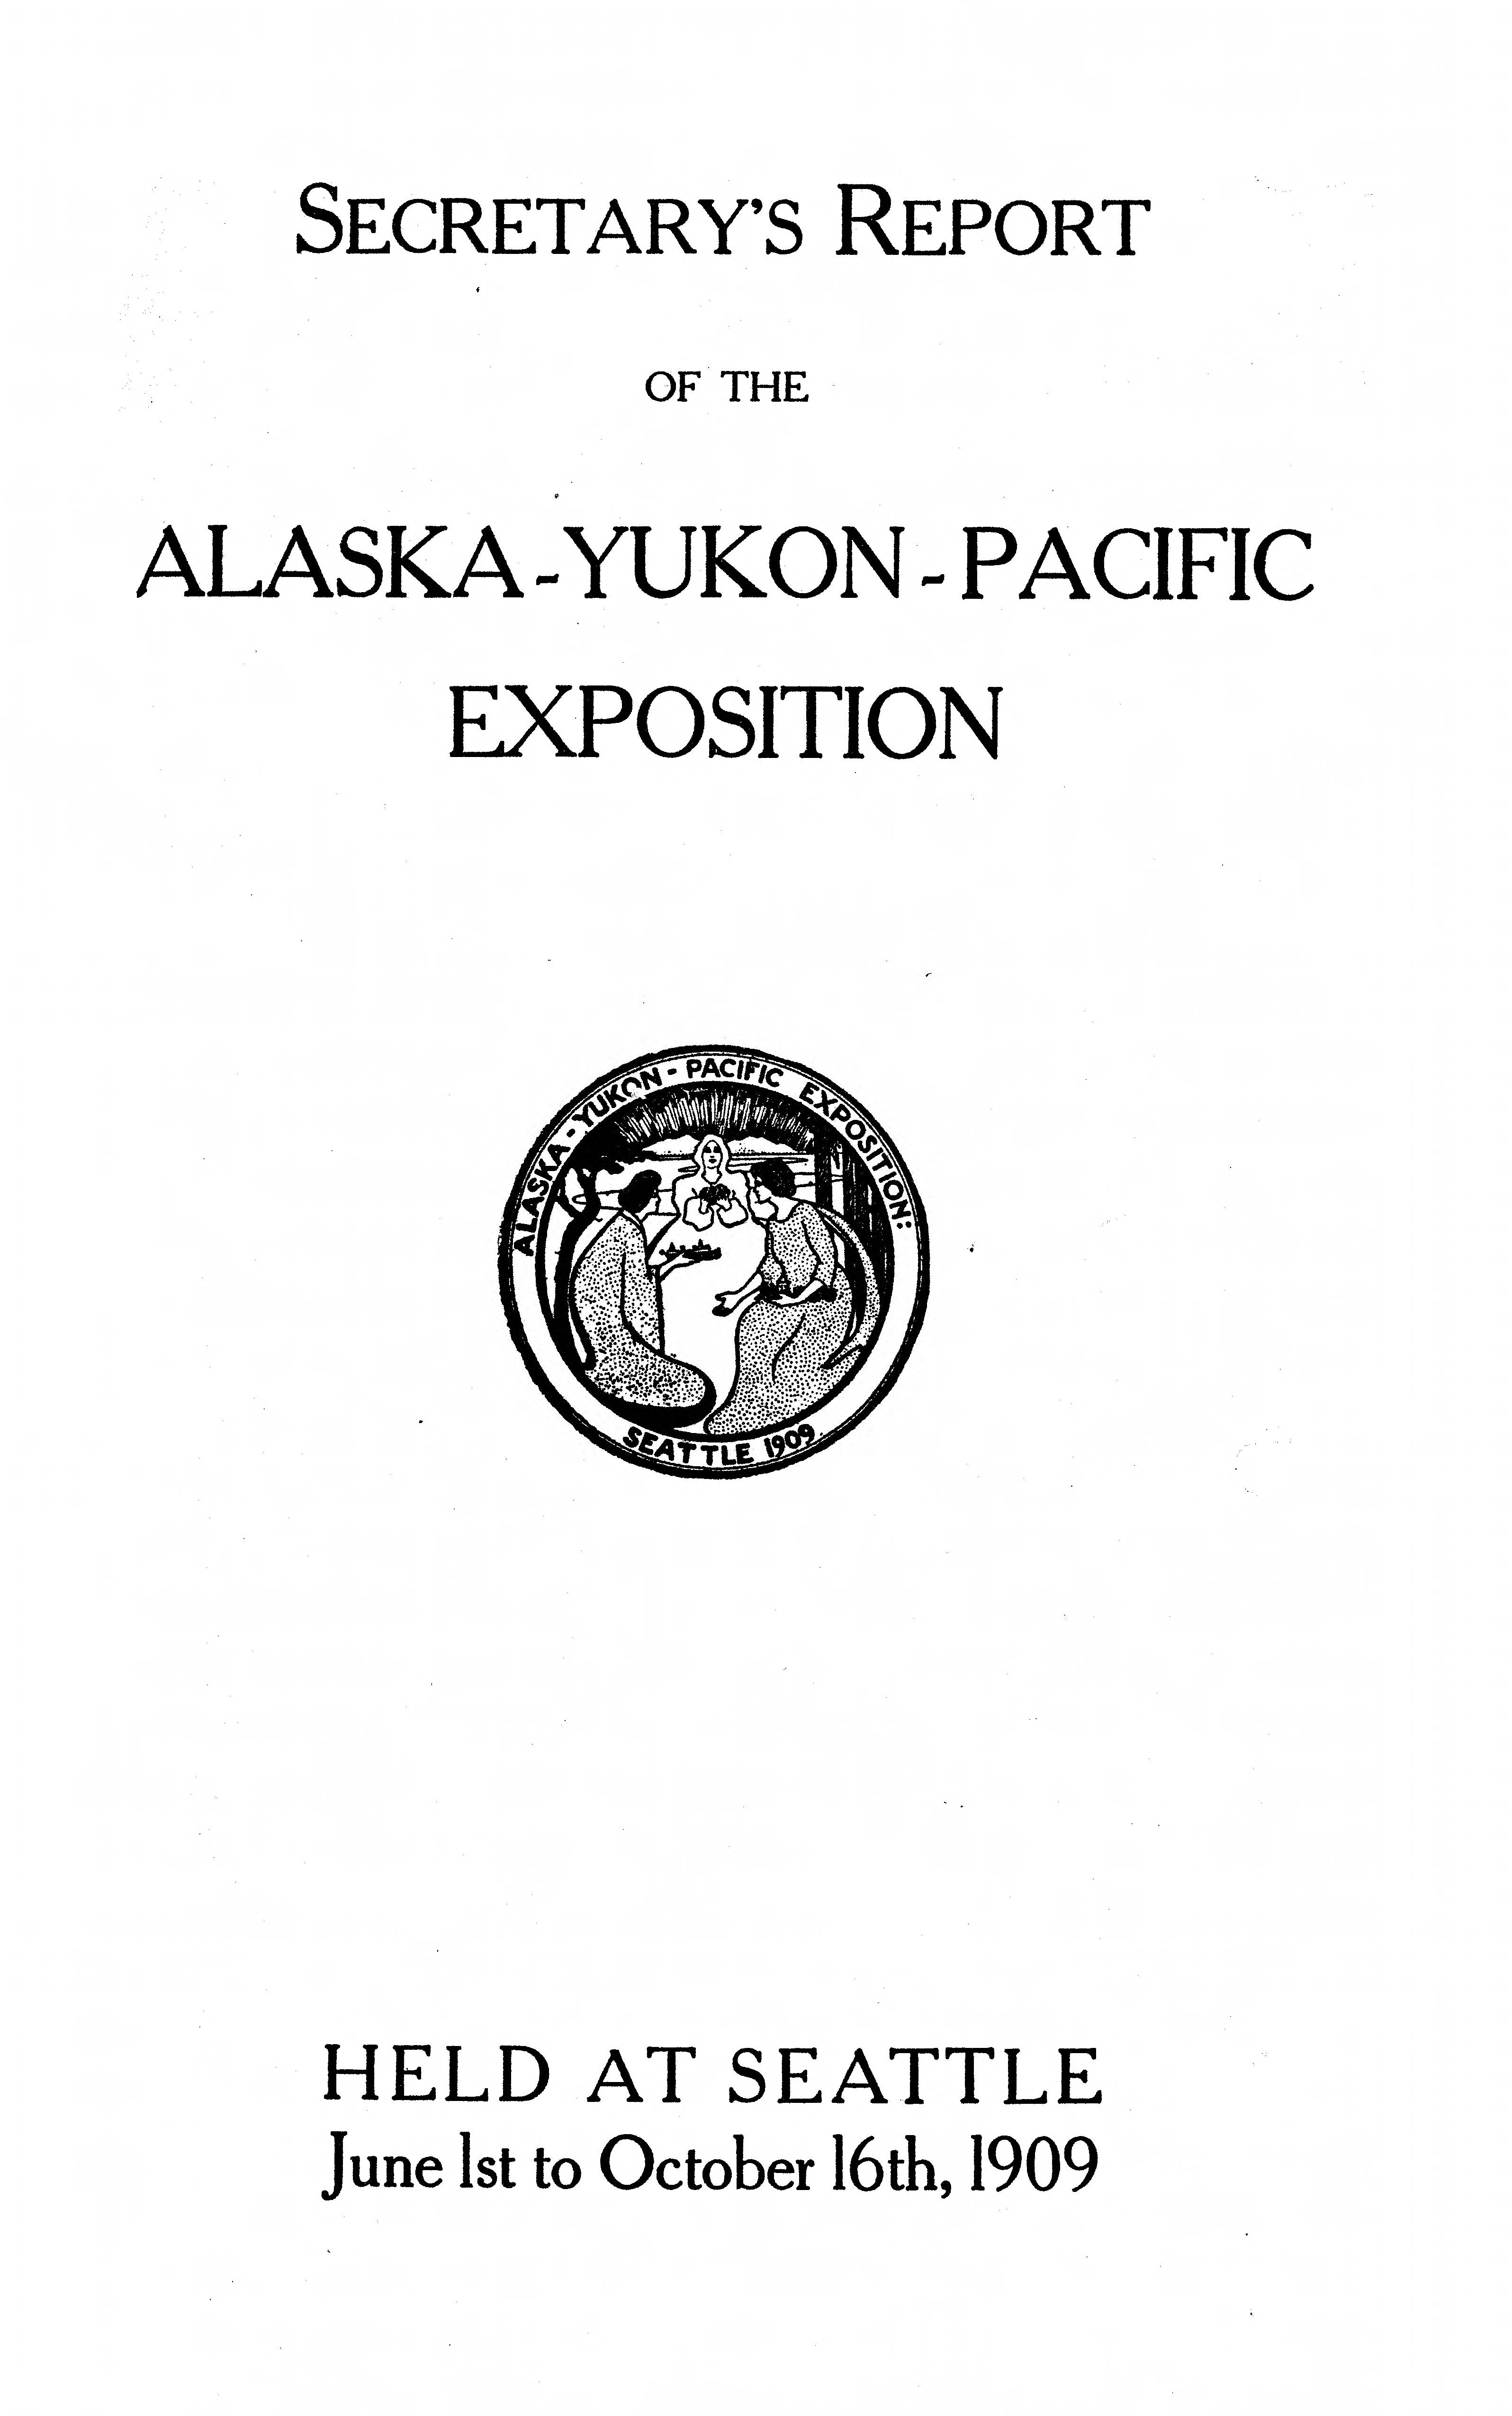 Secretary's report of the Alaska-Yukon-Pacific Exposition: held at Seattle, June 1st to October 16th, 1909